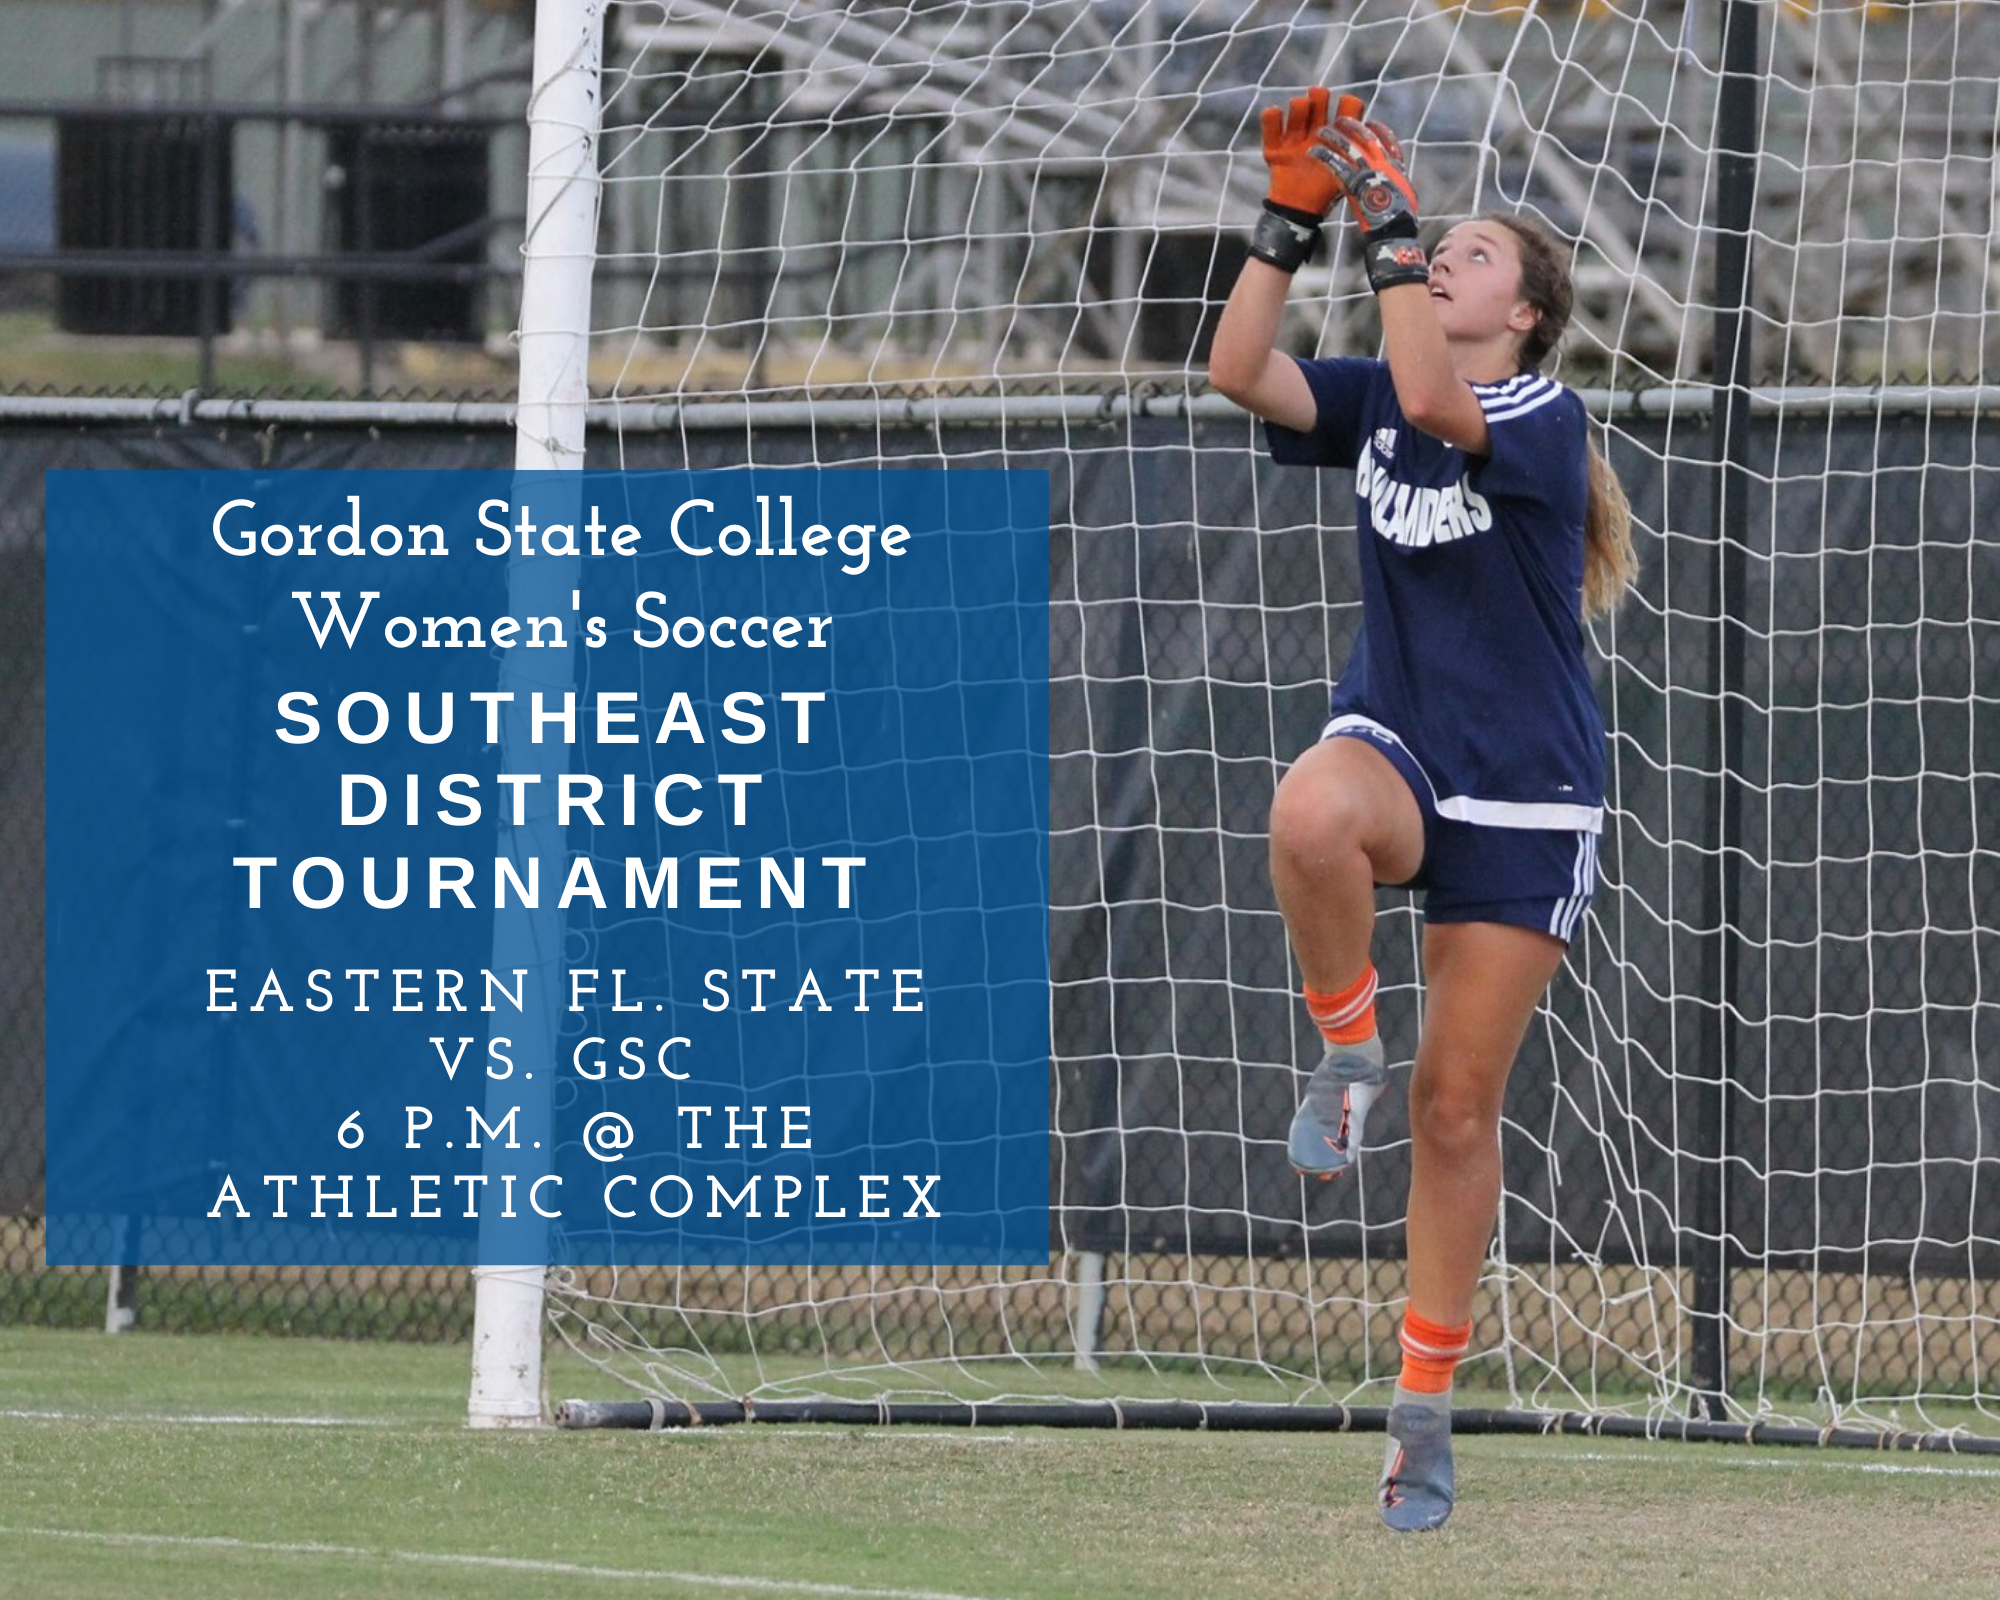 Gordon State College Women's Soccer defended the Georgia Collegiate Athletic Association (NJCAA Region 17) title with a 1-0 victory over Georgia Military College.